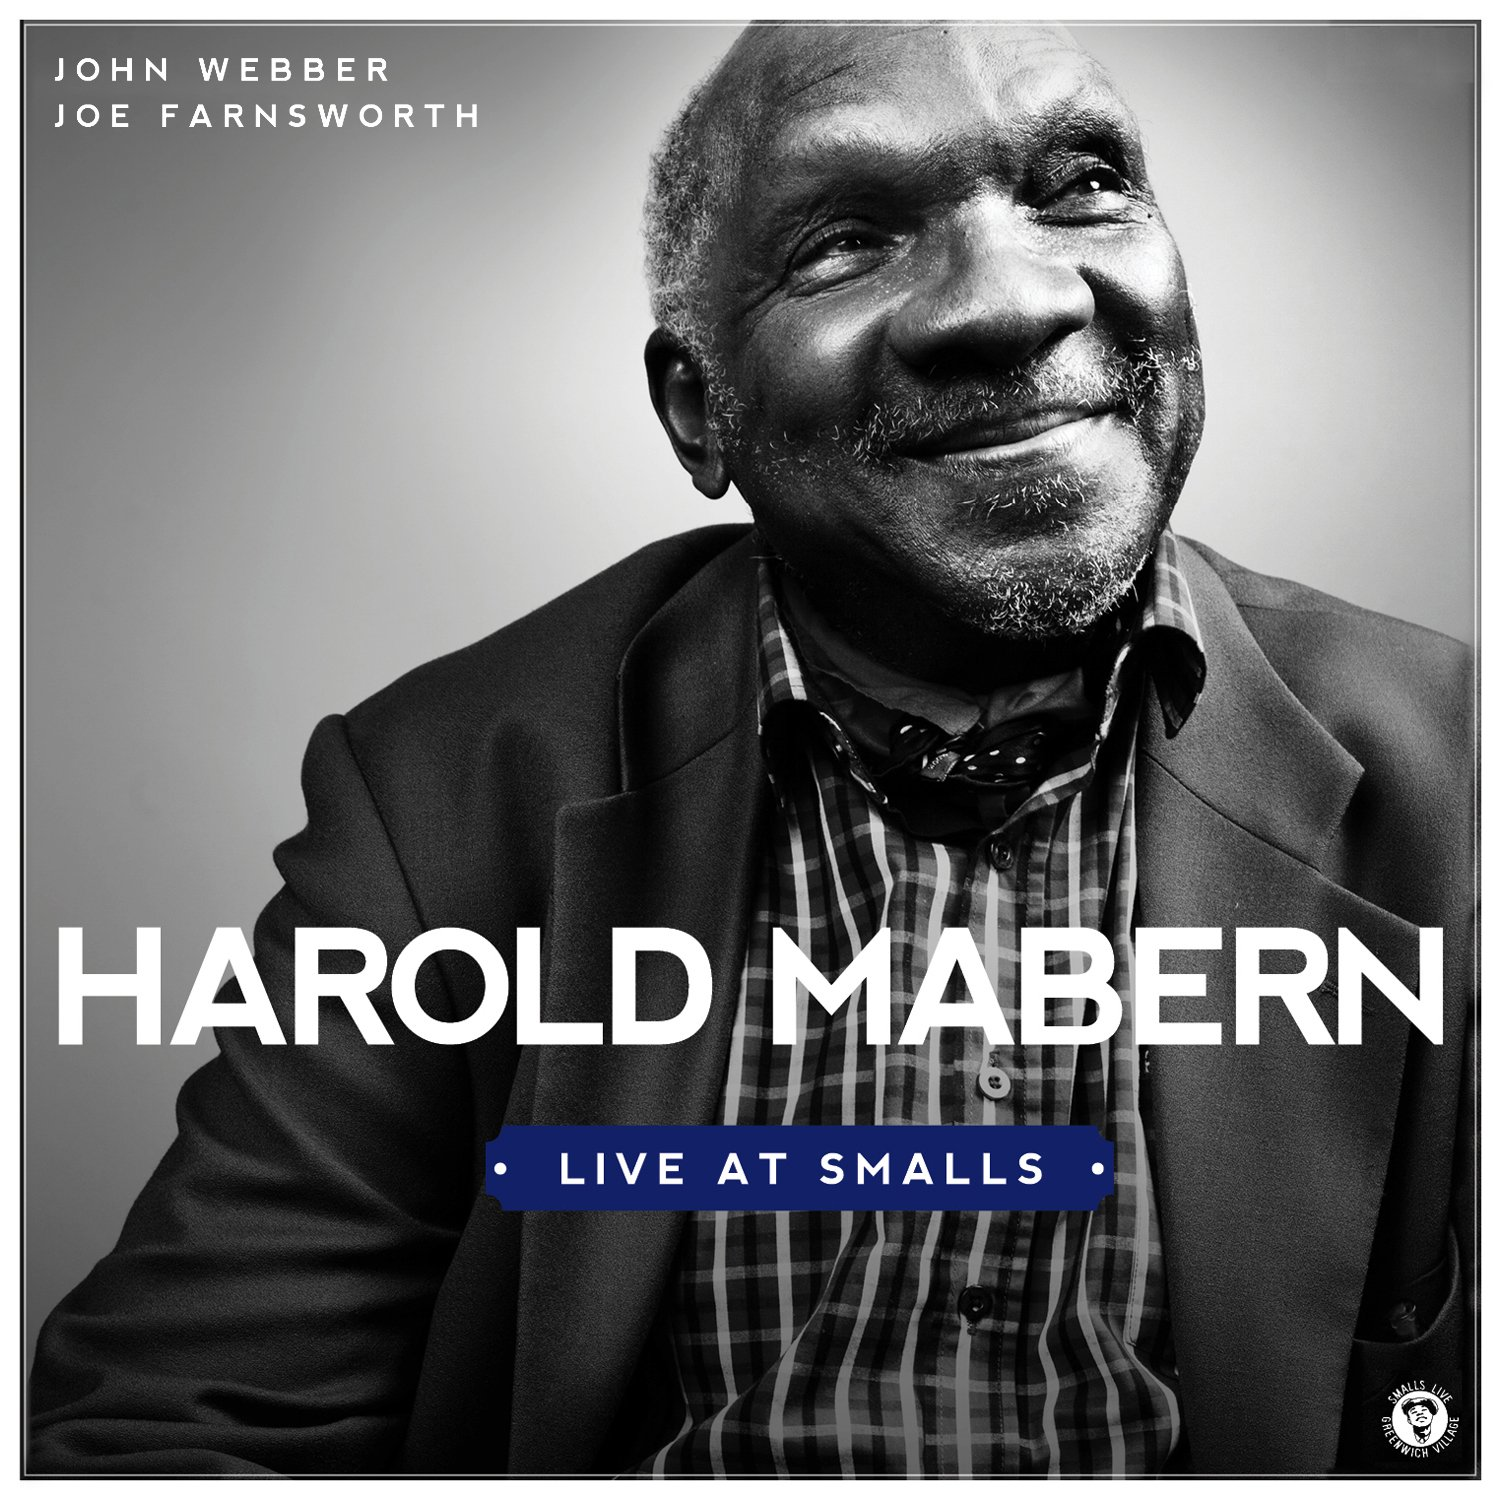 Harold Mabern - Live at Smalls by Sesame Street